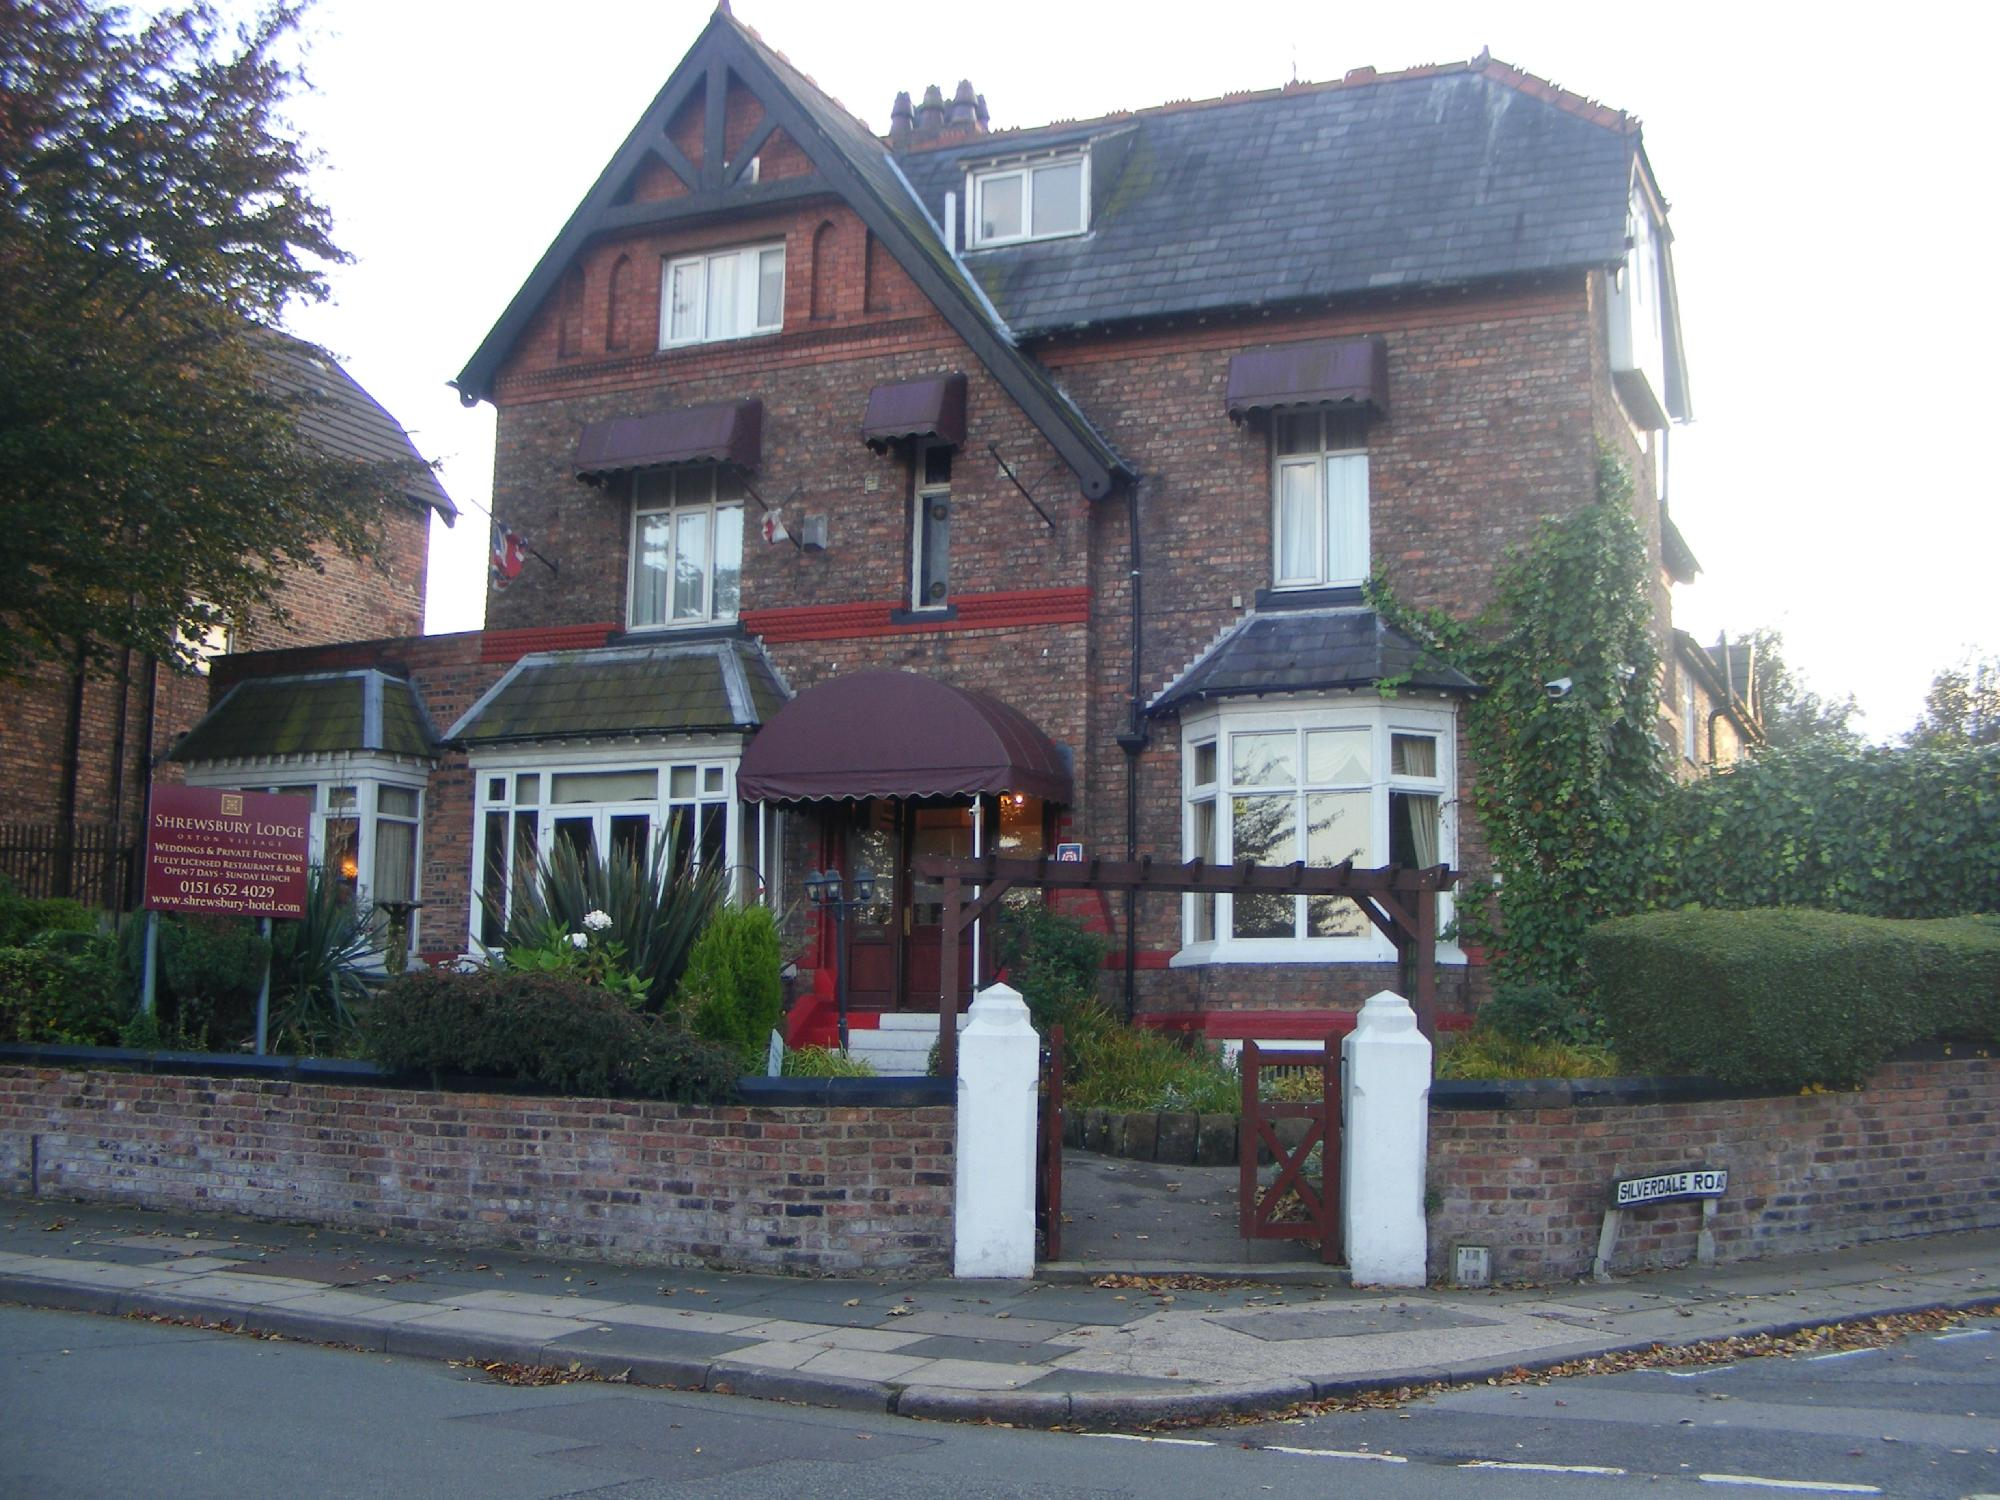 The Shrewsbury Lodge